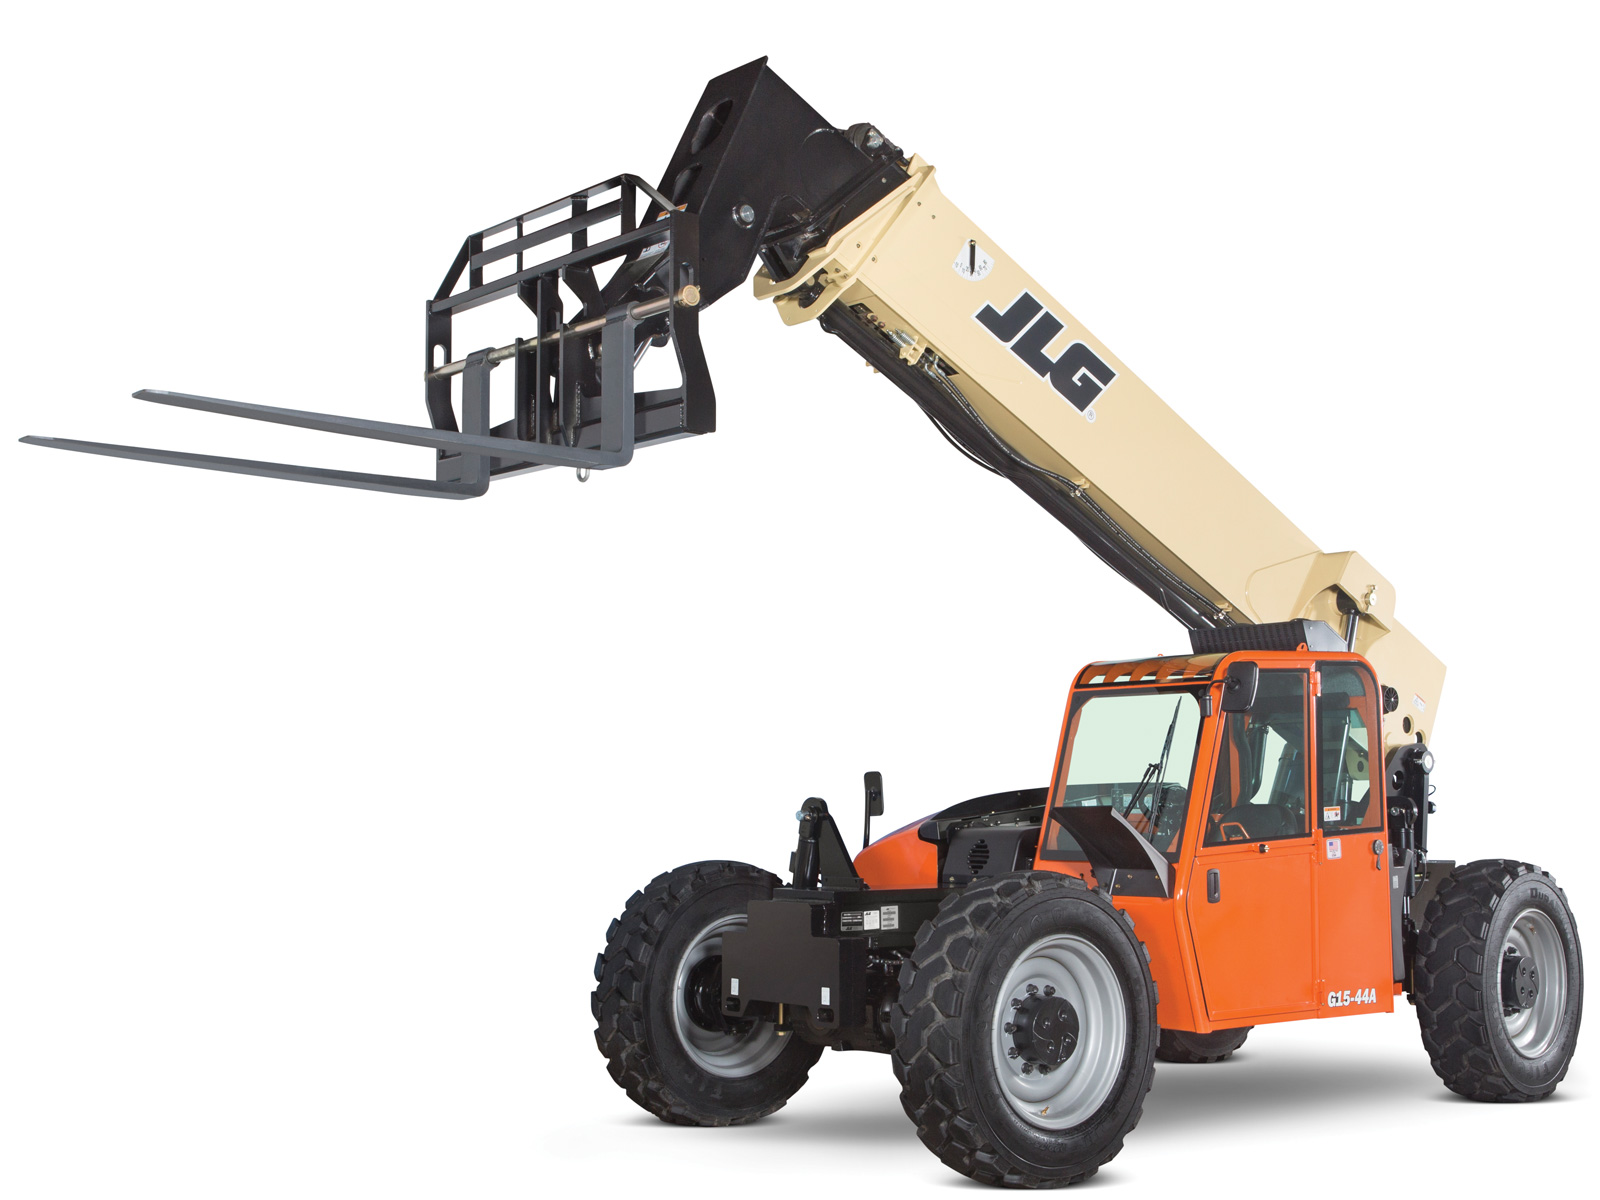 Related New Equipment - G15-44A